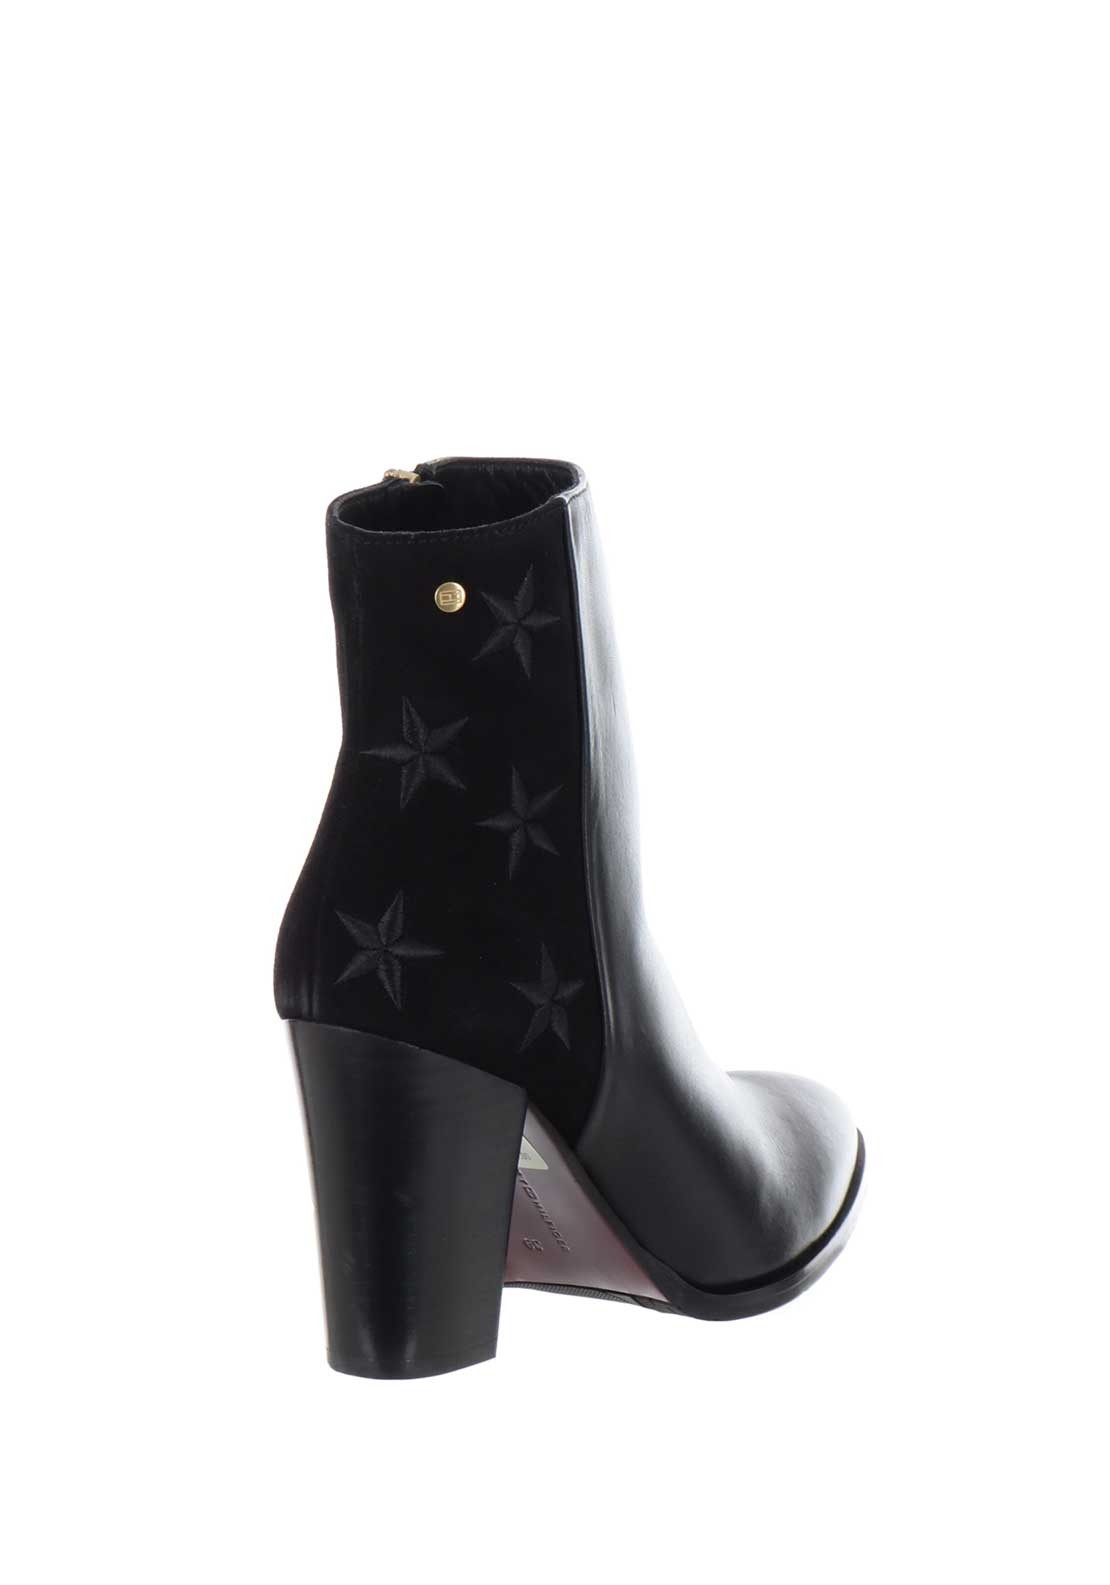 95090fd0b82 Tommy Hilfiger Womens Leather Star Ankle Boots, Black